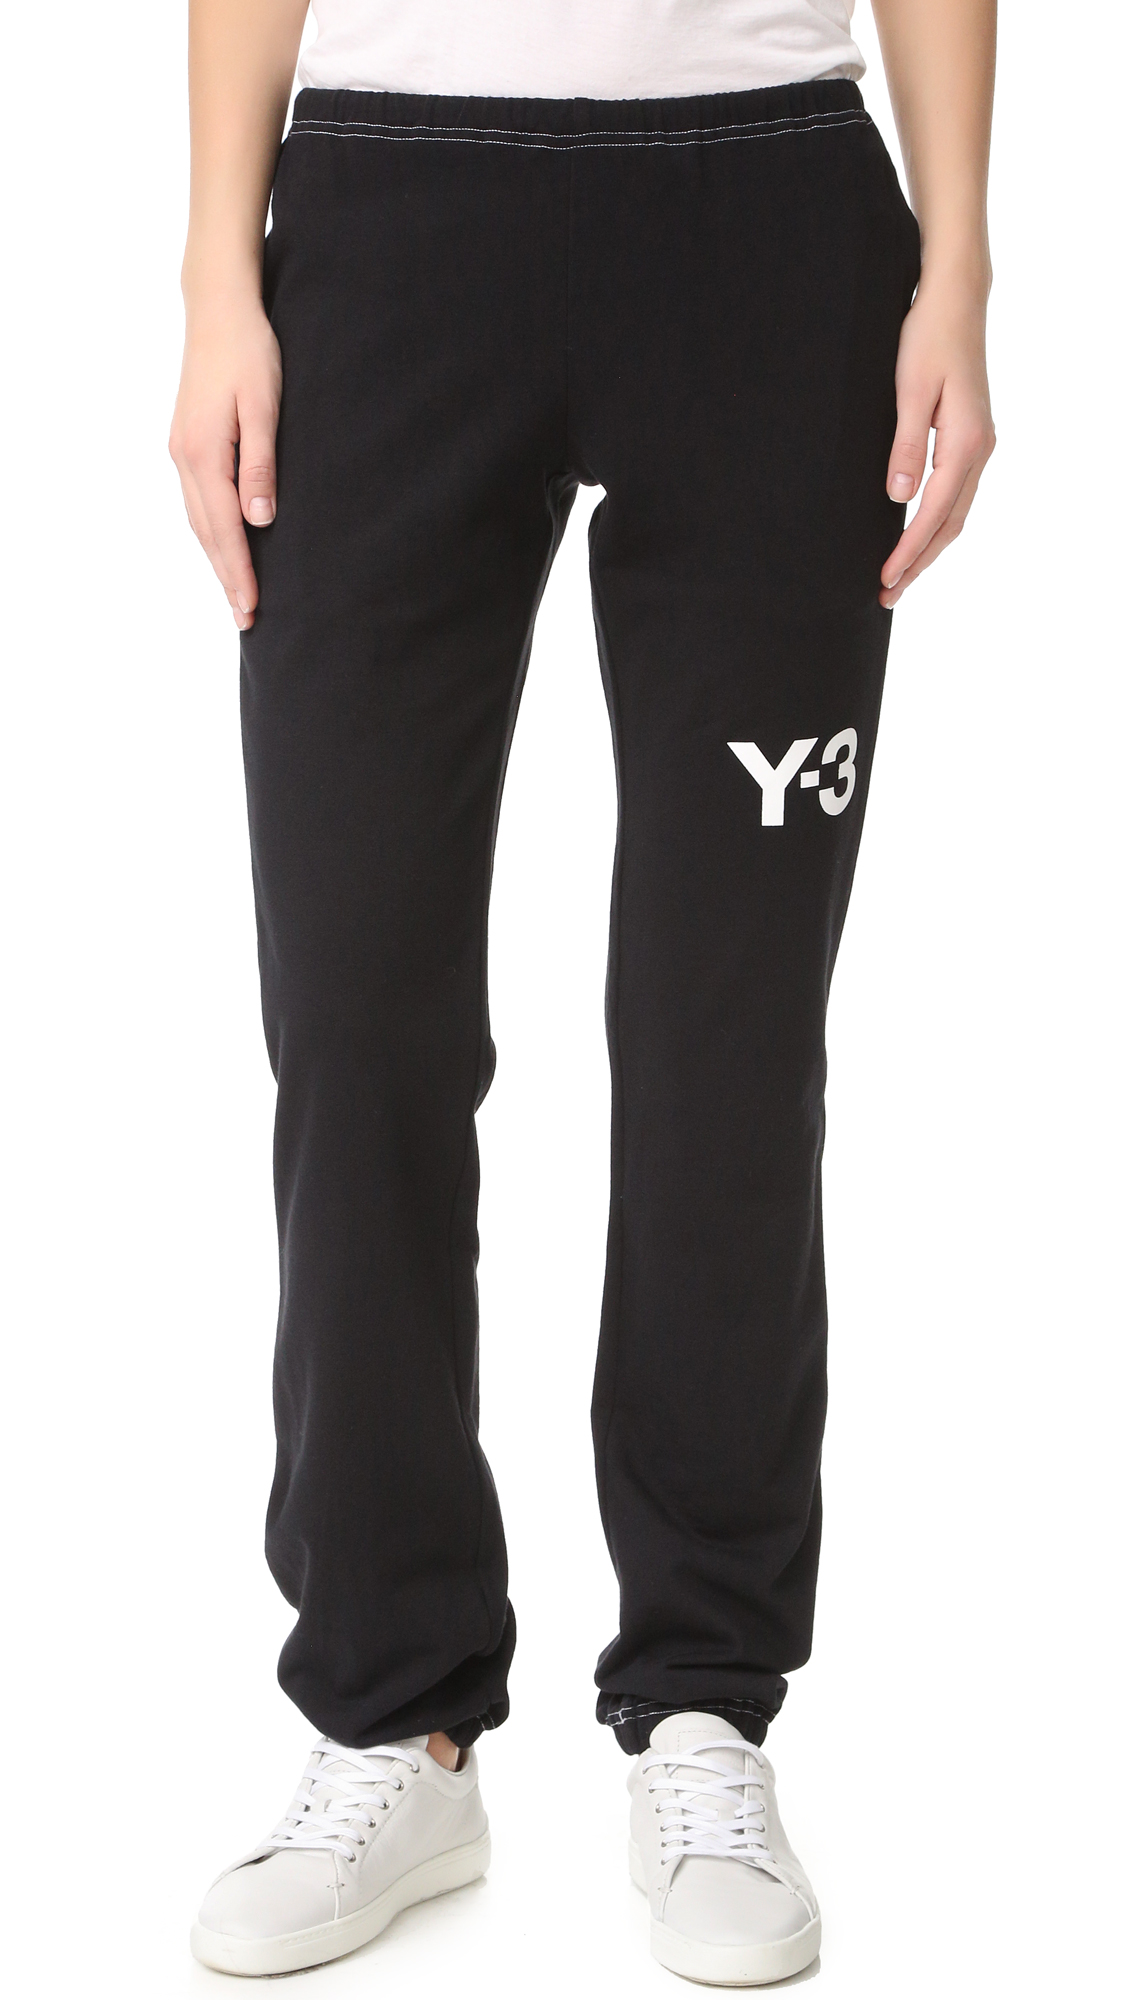 Straight leg Y 3 sweatpants with contrast topstitching and logo letters at the side. On seam pockets. Drawstring waistband and elastic cuffs. Fabric: French terry. 100% cotton. Wash cold. Imported, China. Measurements Rise: 8.75in / 22cm Inseam: 33.75in / 86cm